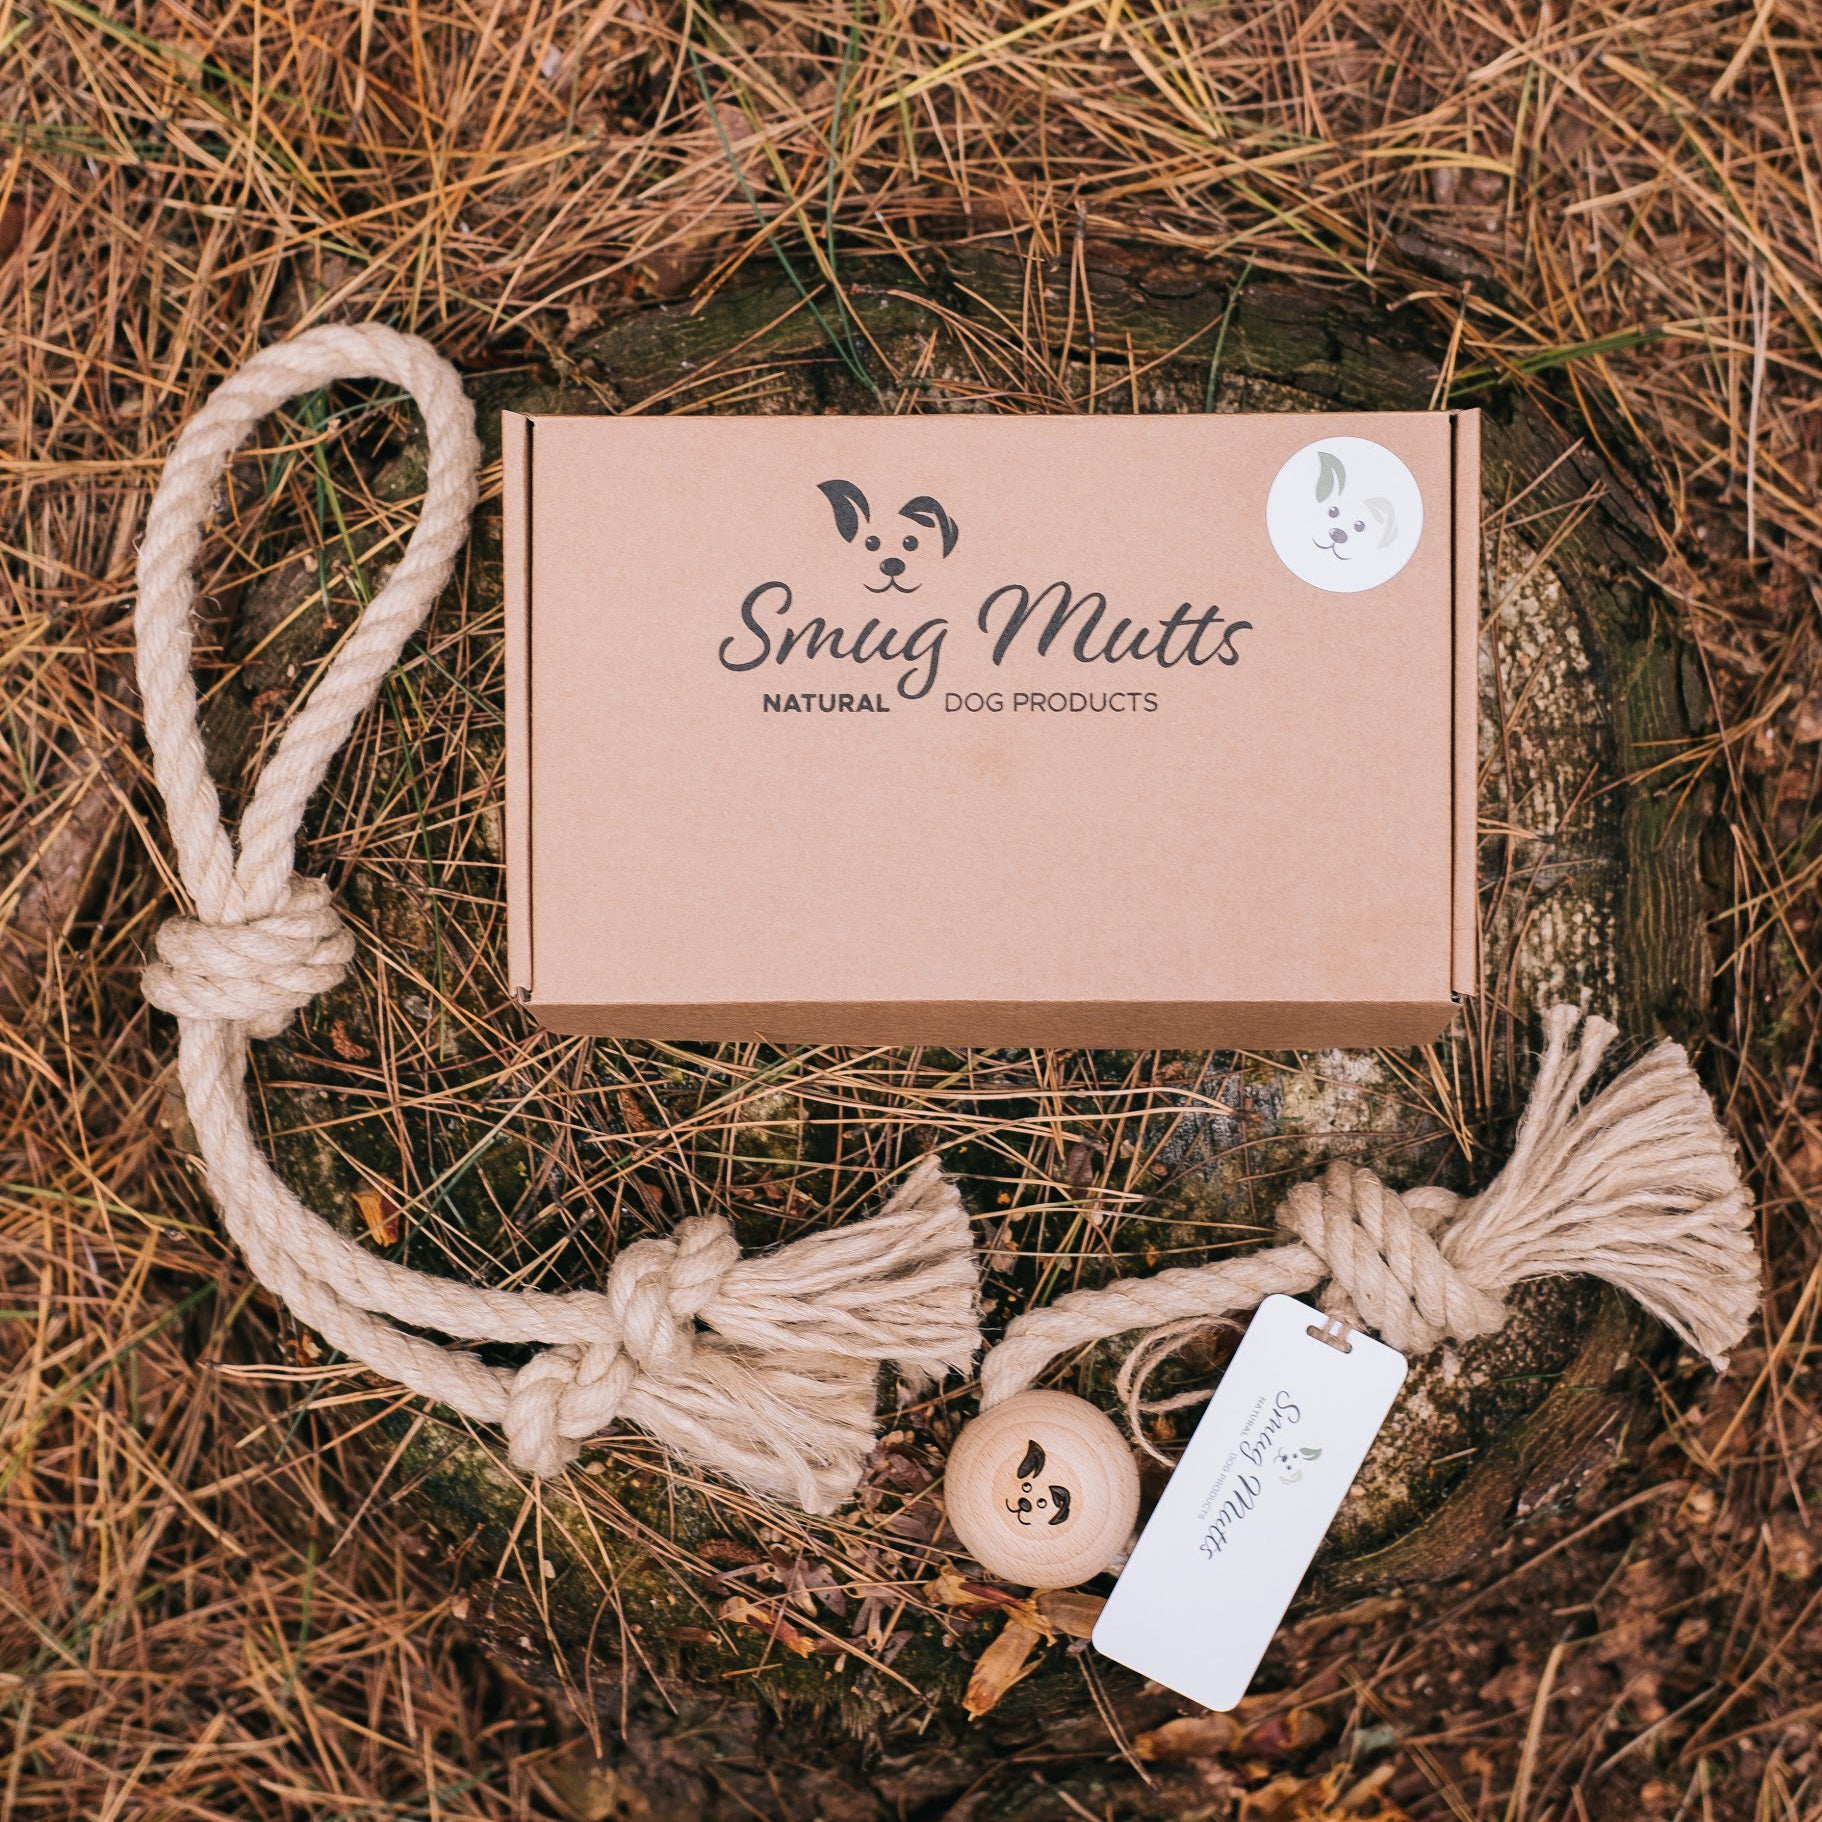 Smug Mutts Natural Hemp and Beech Wood Rope Toys and Packaging in Woodland Flat Lay Scene